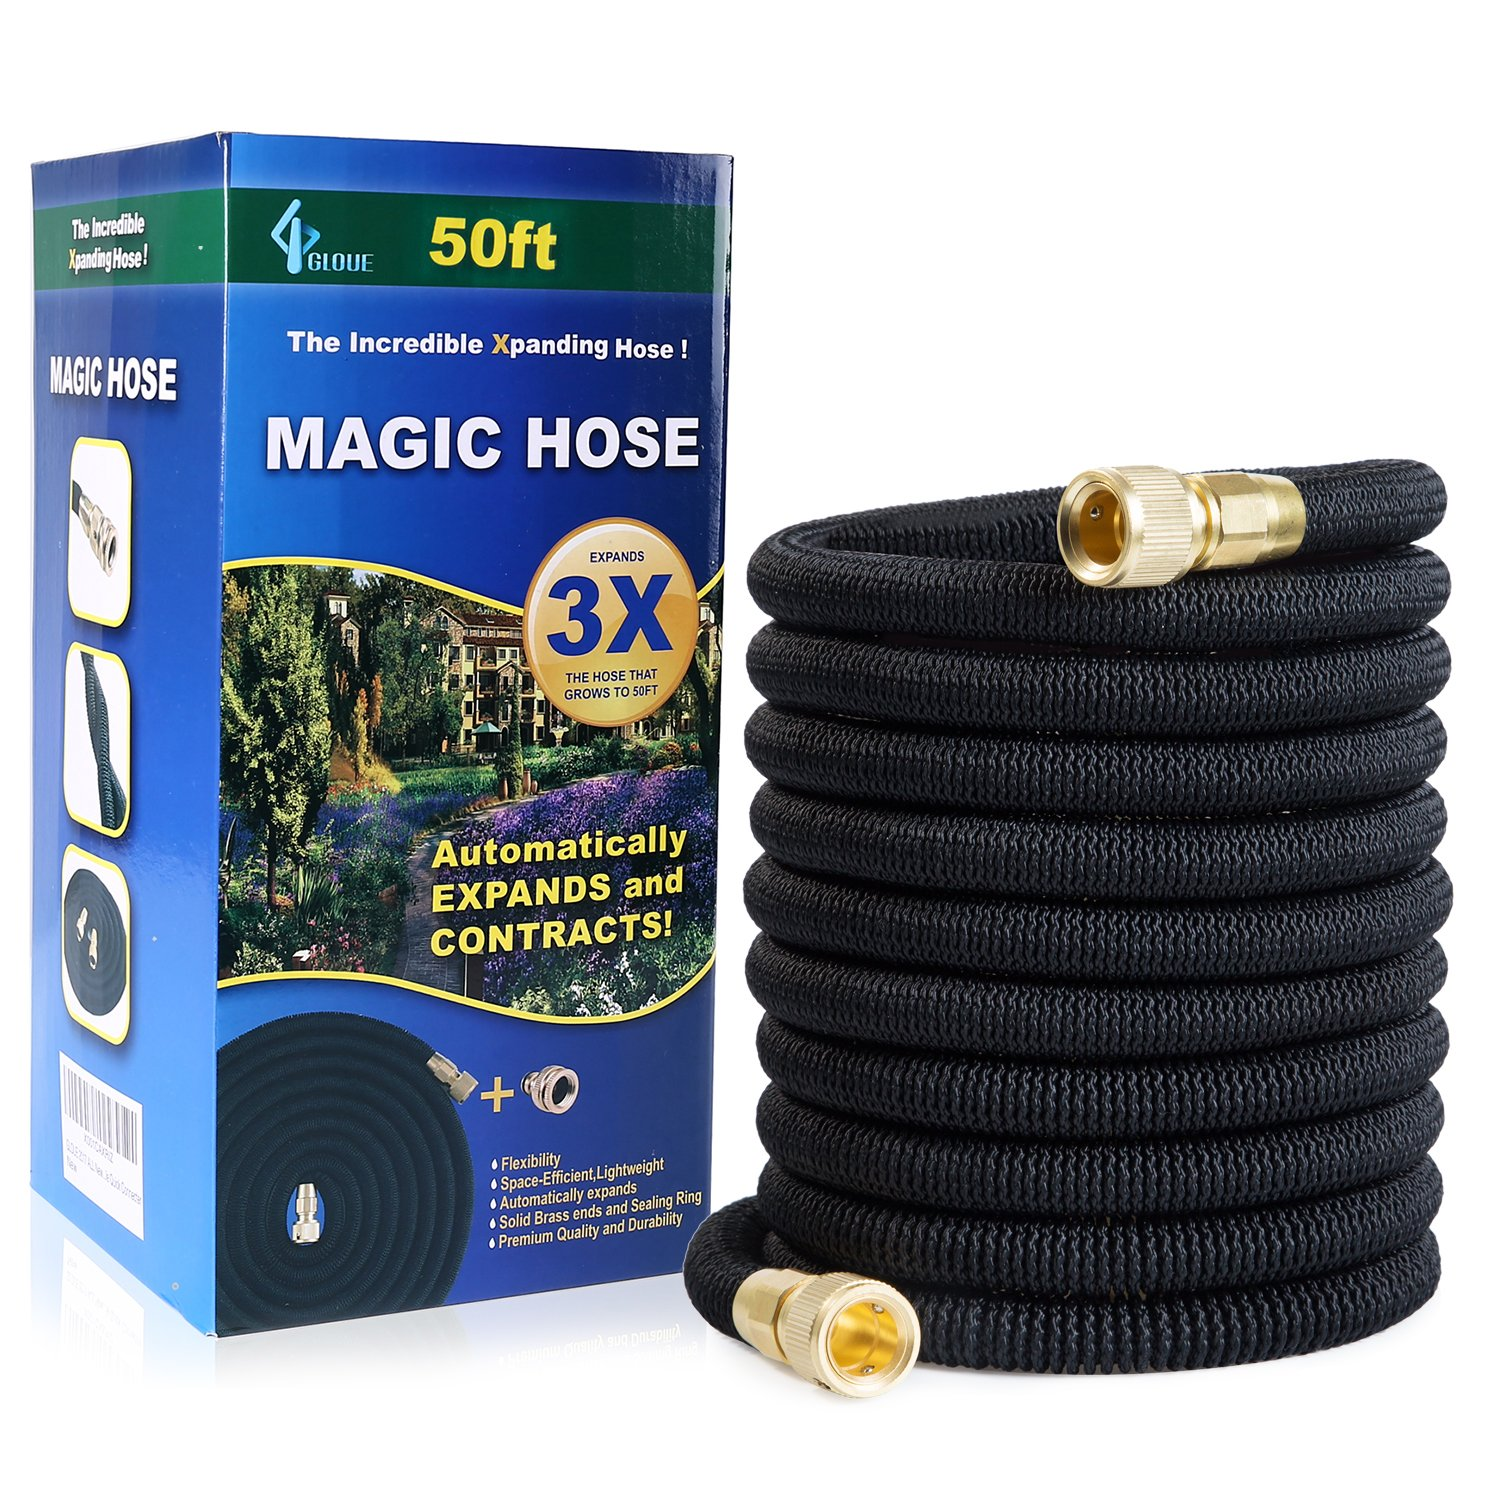 GLOUE 50FT Garden Hose